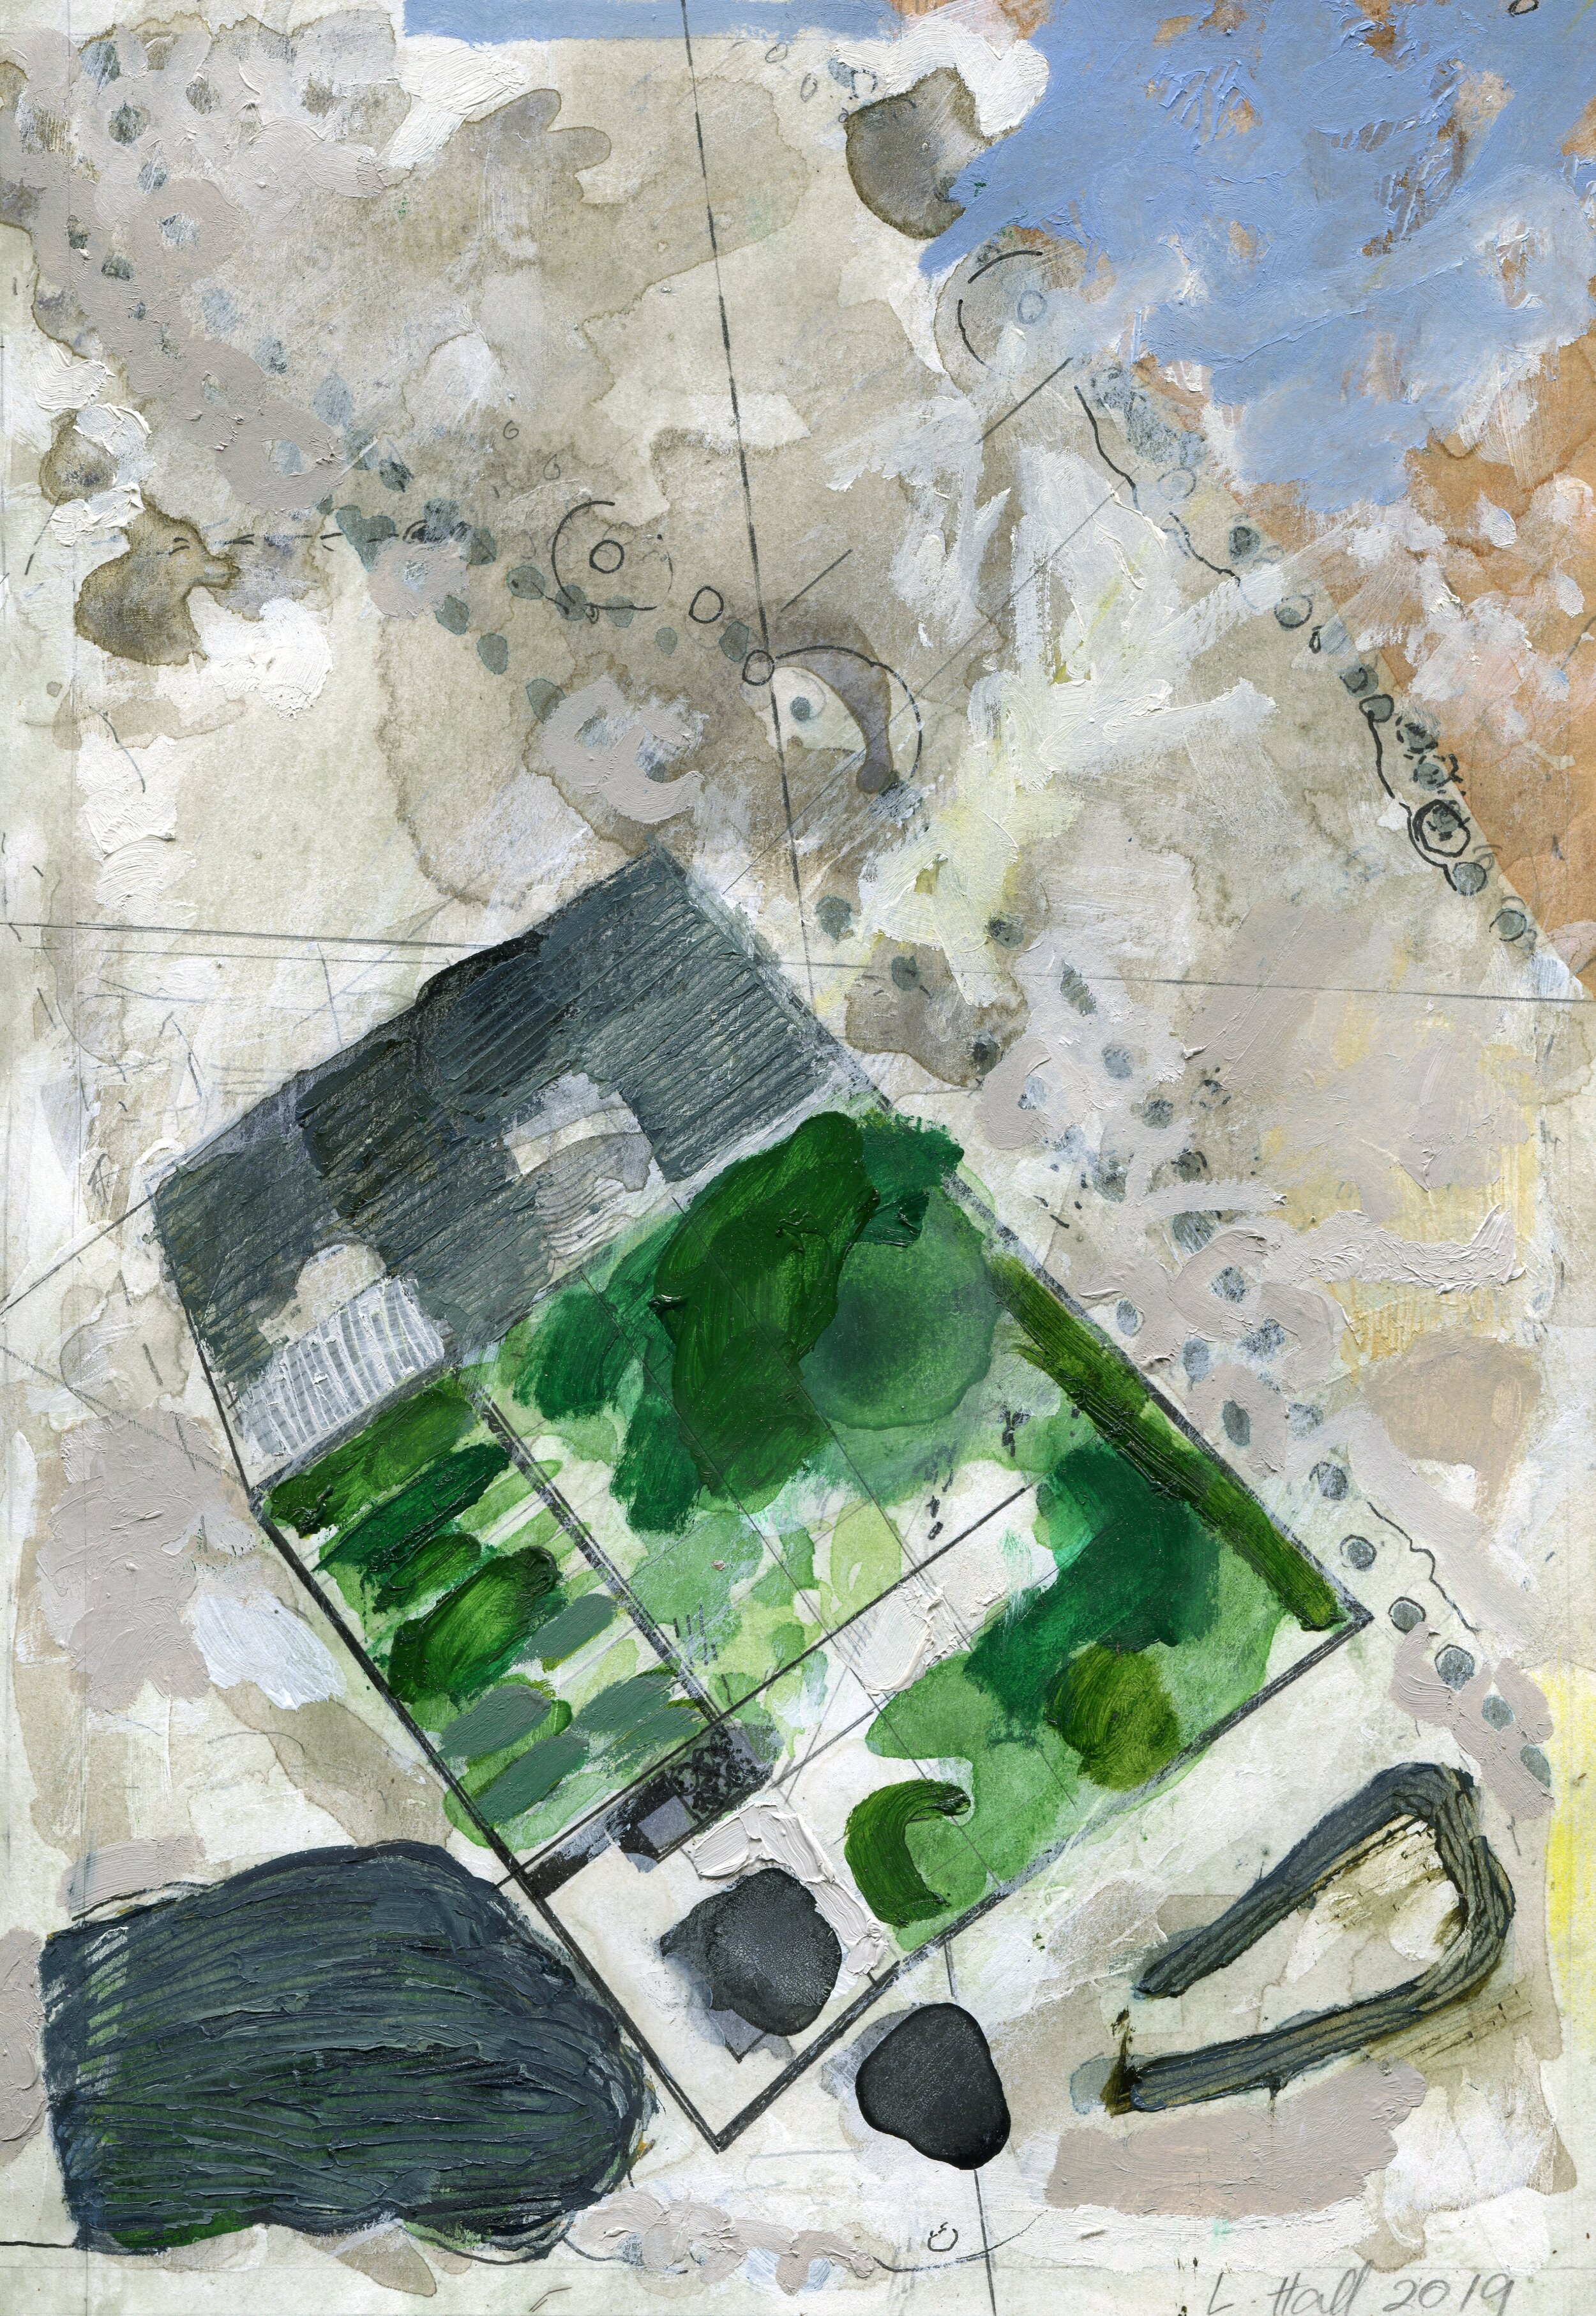 66b  Louise Hall  Landscape aerial perspective  mixed media on paper